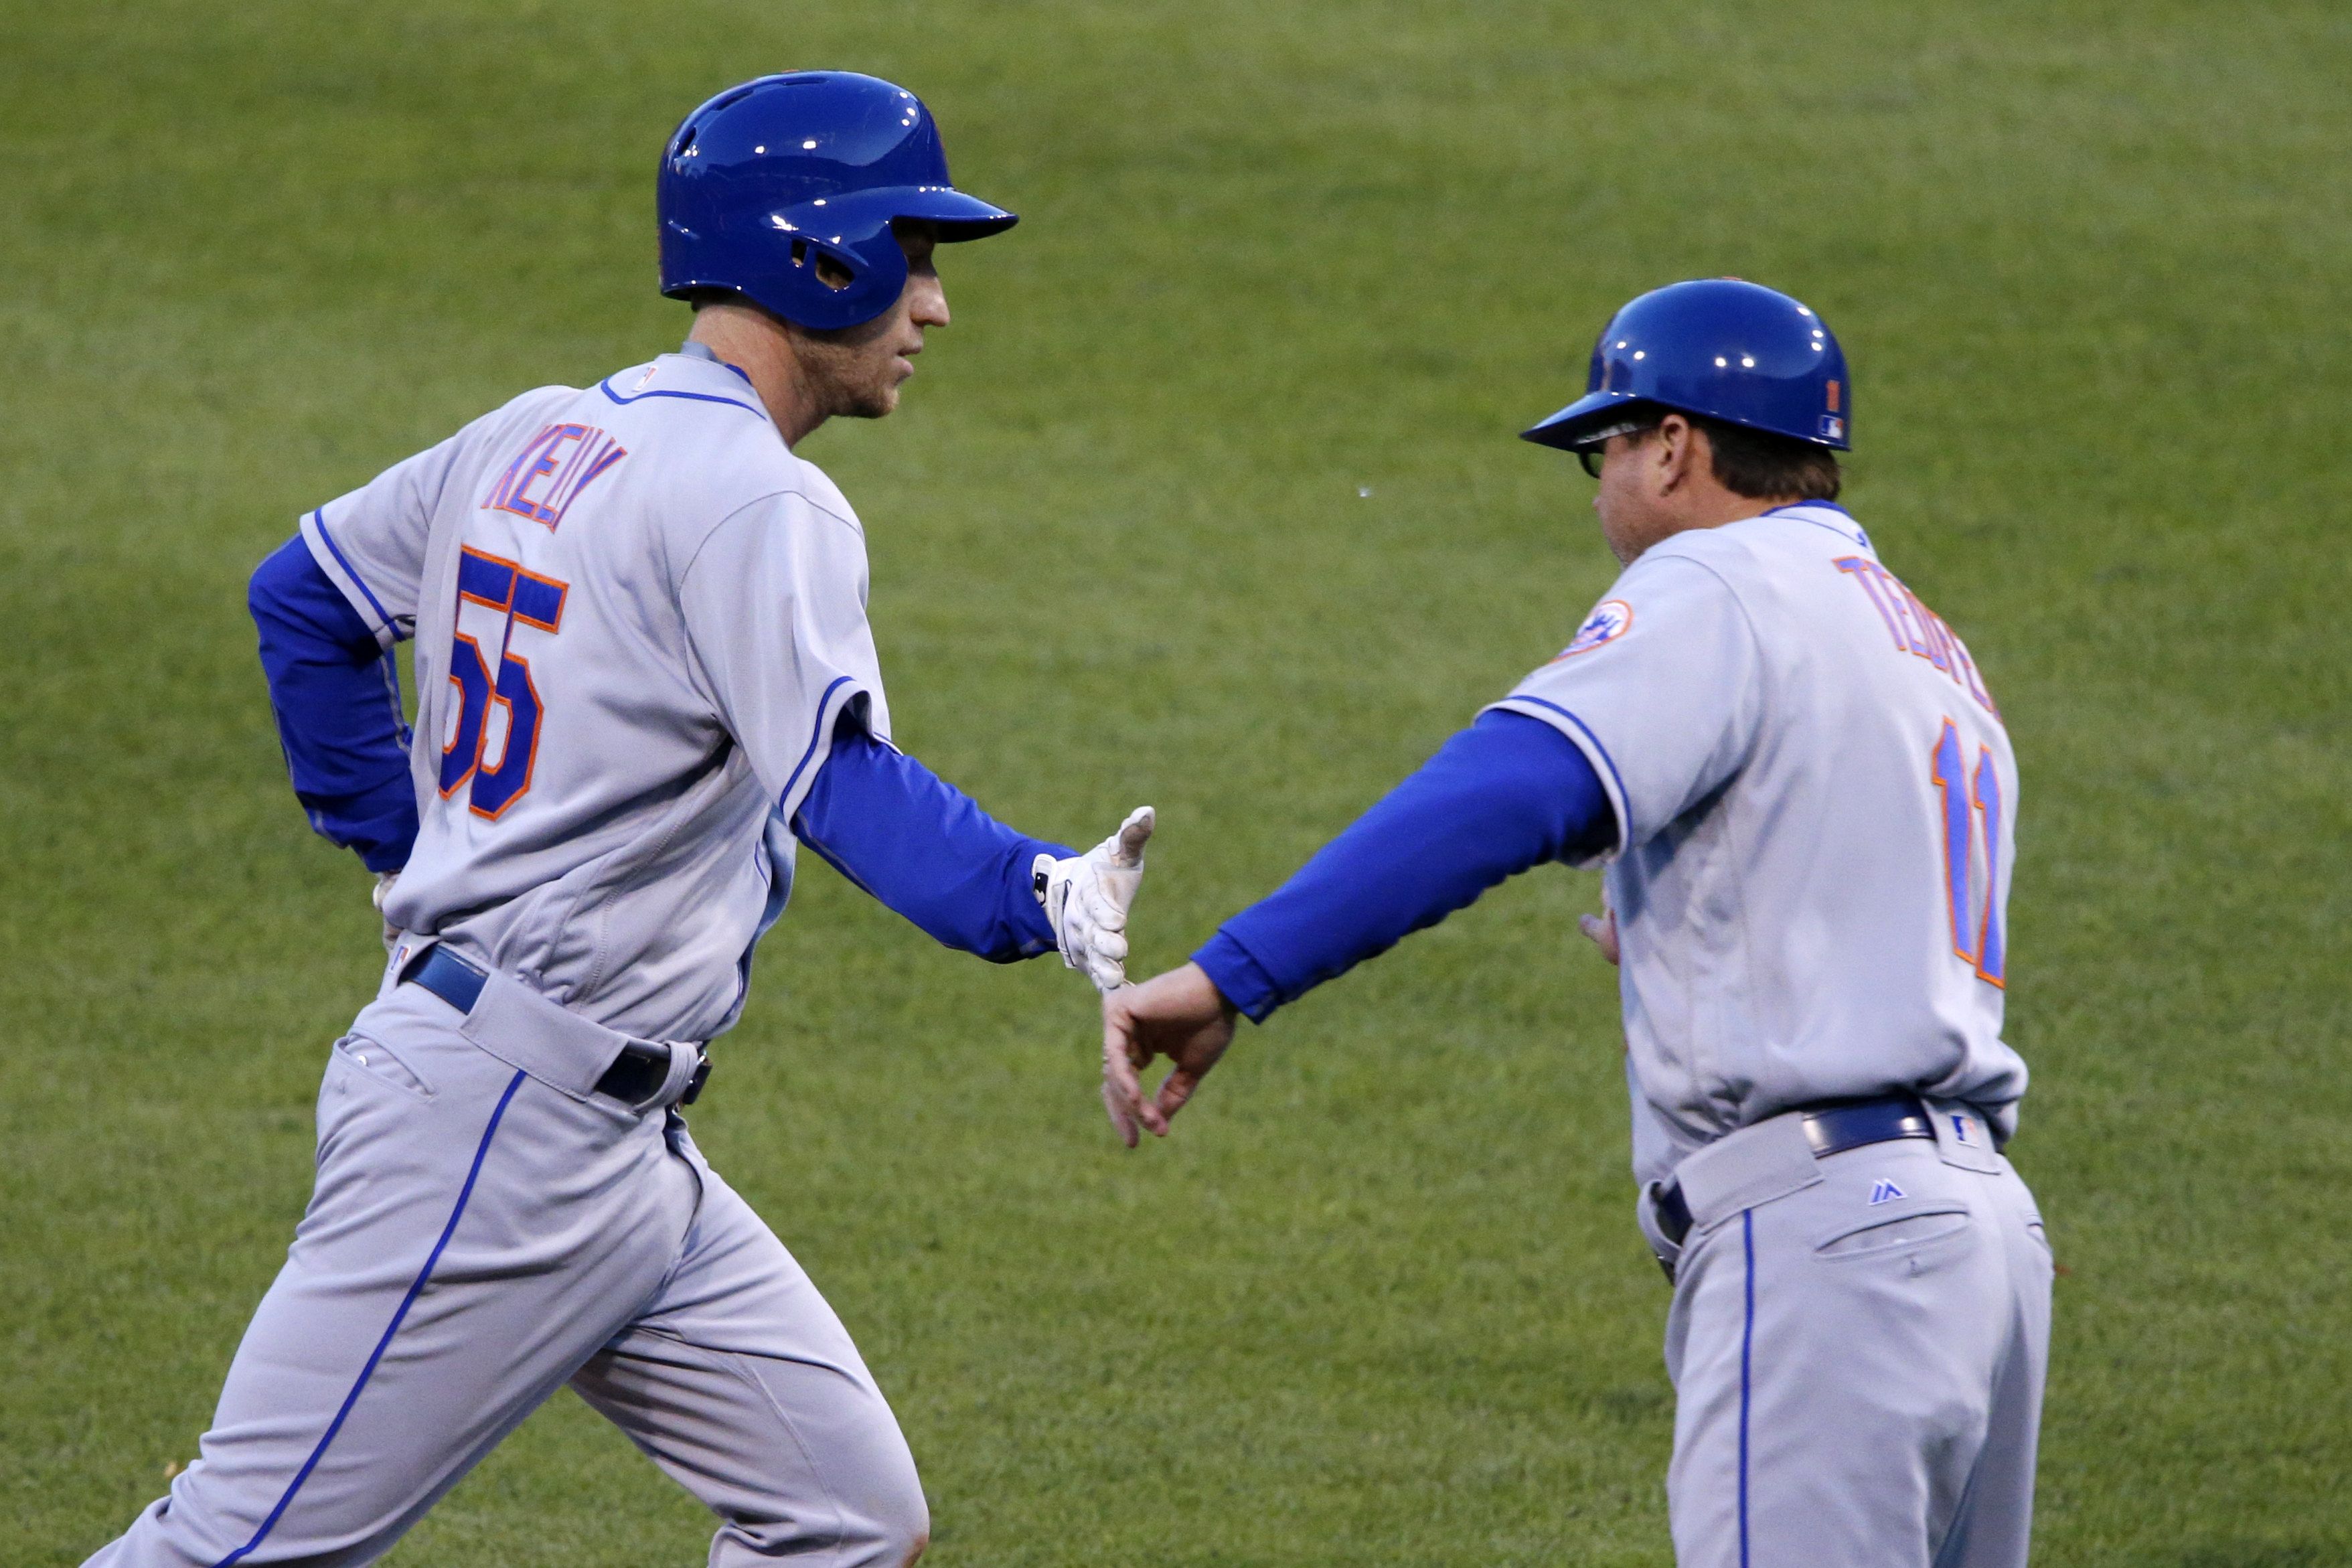 New York Mets' Ty Kelly, left, is greeted by coach Tim Teufel after hitting a two-run home run off Pittsburgh Pirates pitcher Jameson Taillon during the fourth the inning of a baseball game in Pittsburgh, Wednesday, June 8, 2016. (AP Photo/Gene J. Puskar)